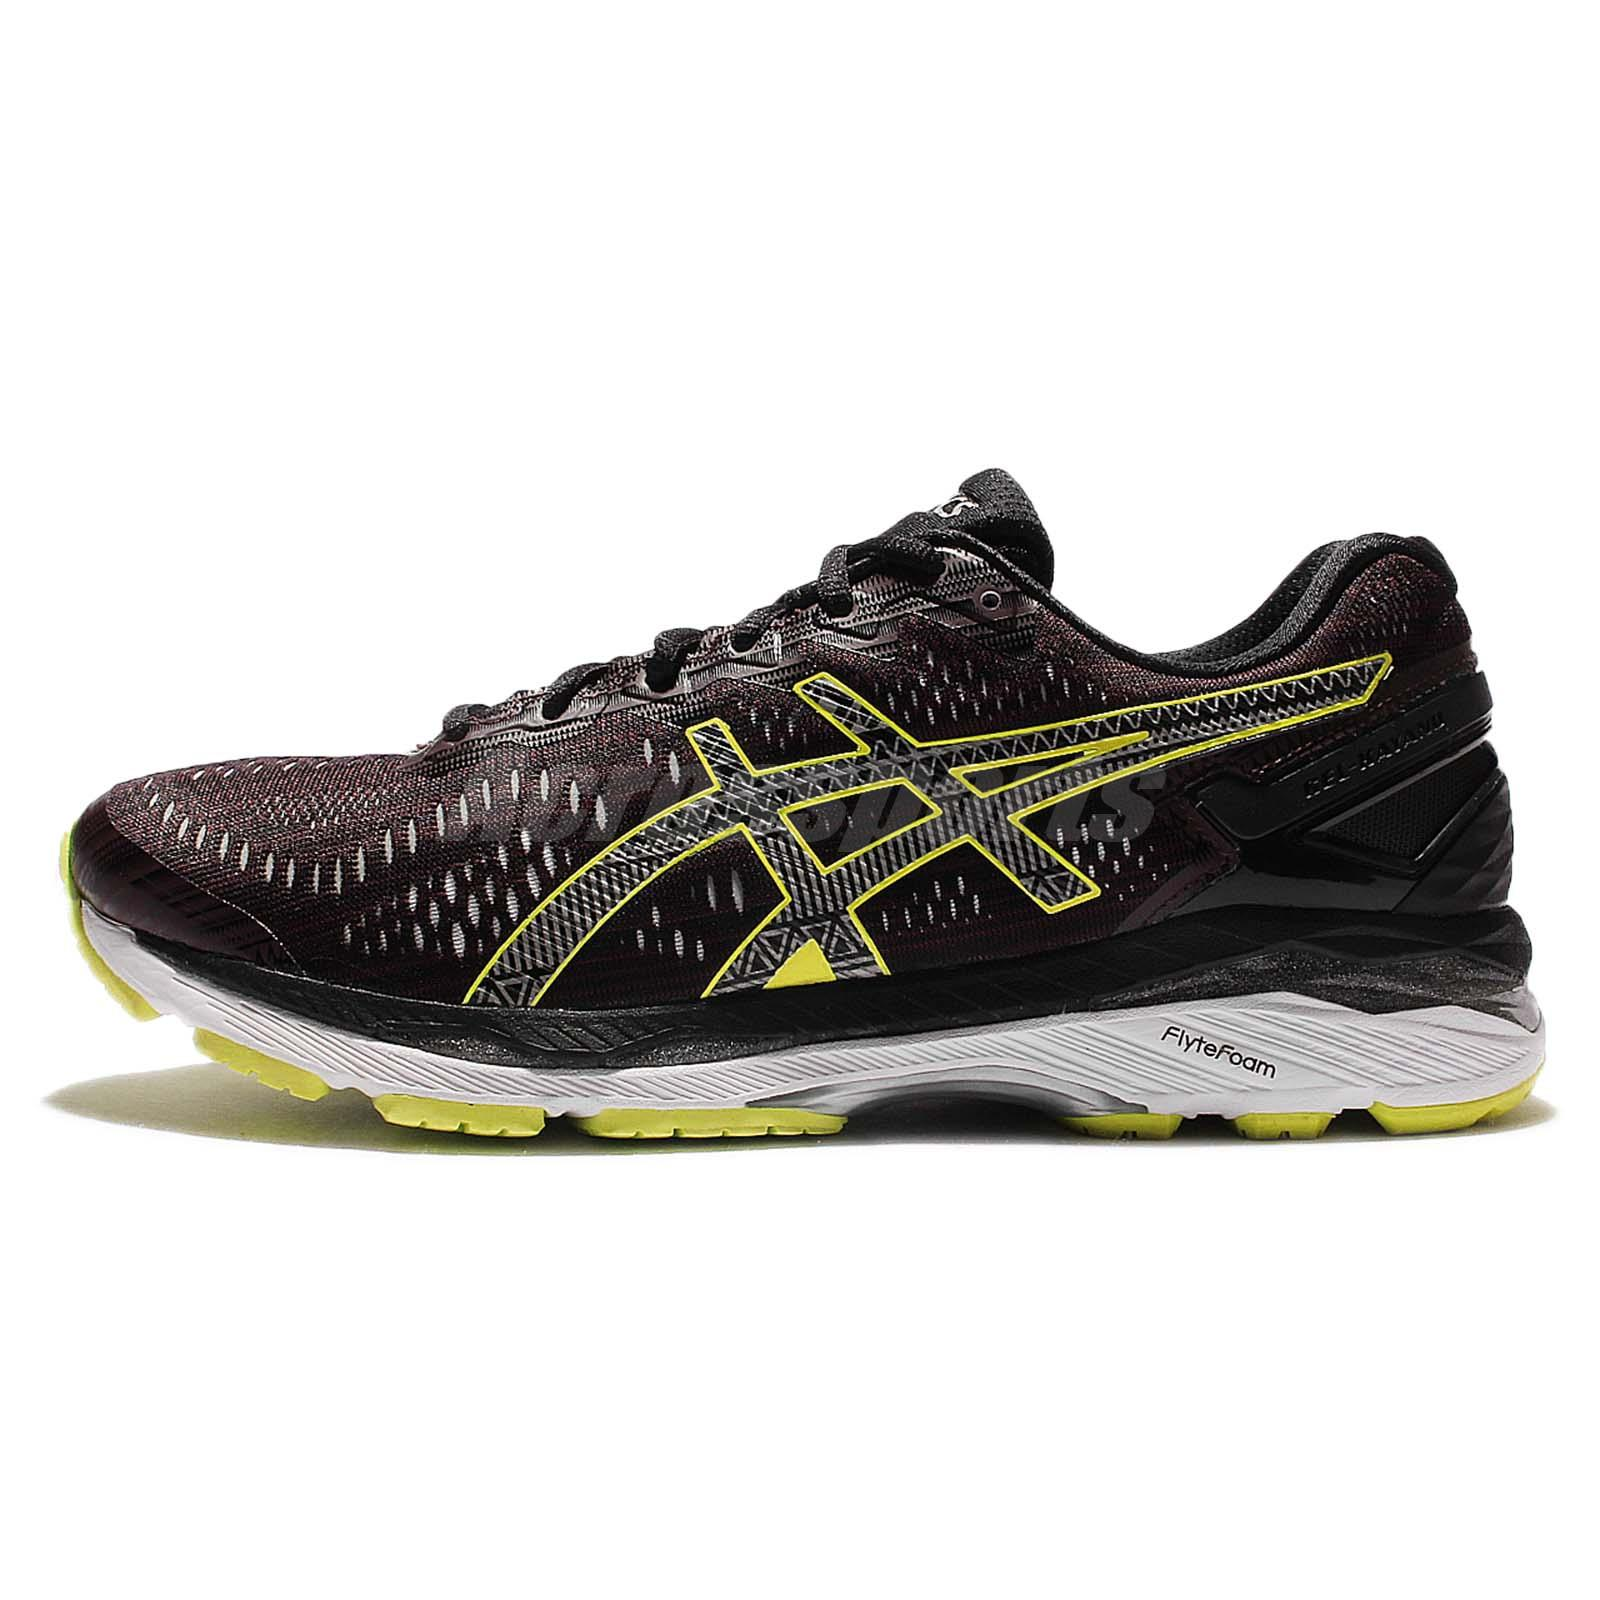 4552abedad79 Asics Gel-Kayano 23 Lite-Show Red Yellow Mens Running Shoes Sneakers  T6A1N-2590